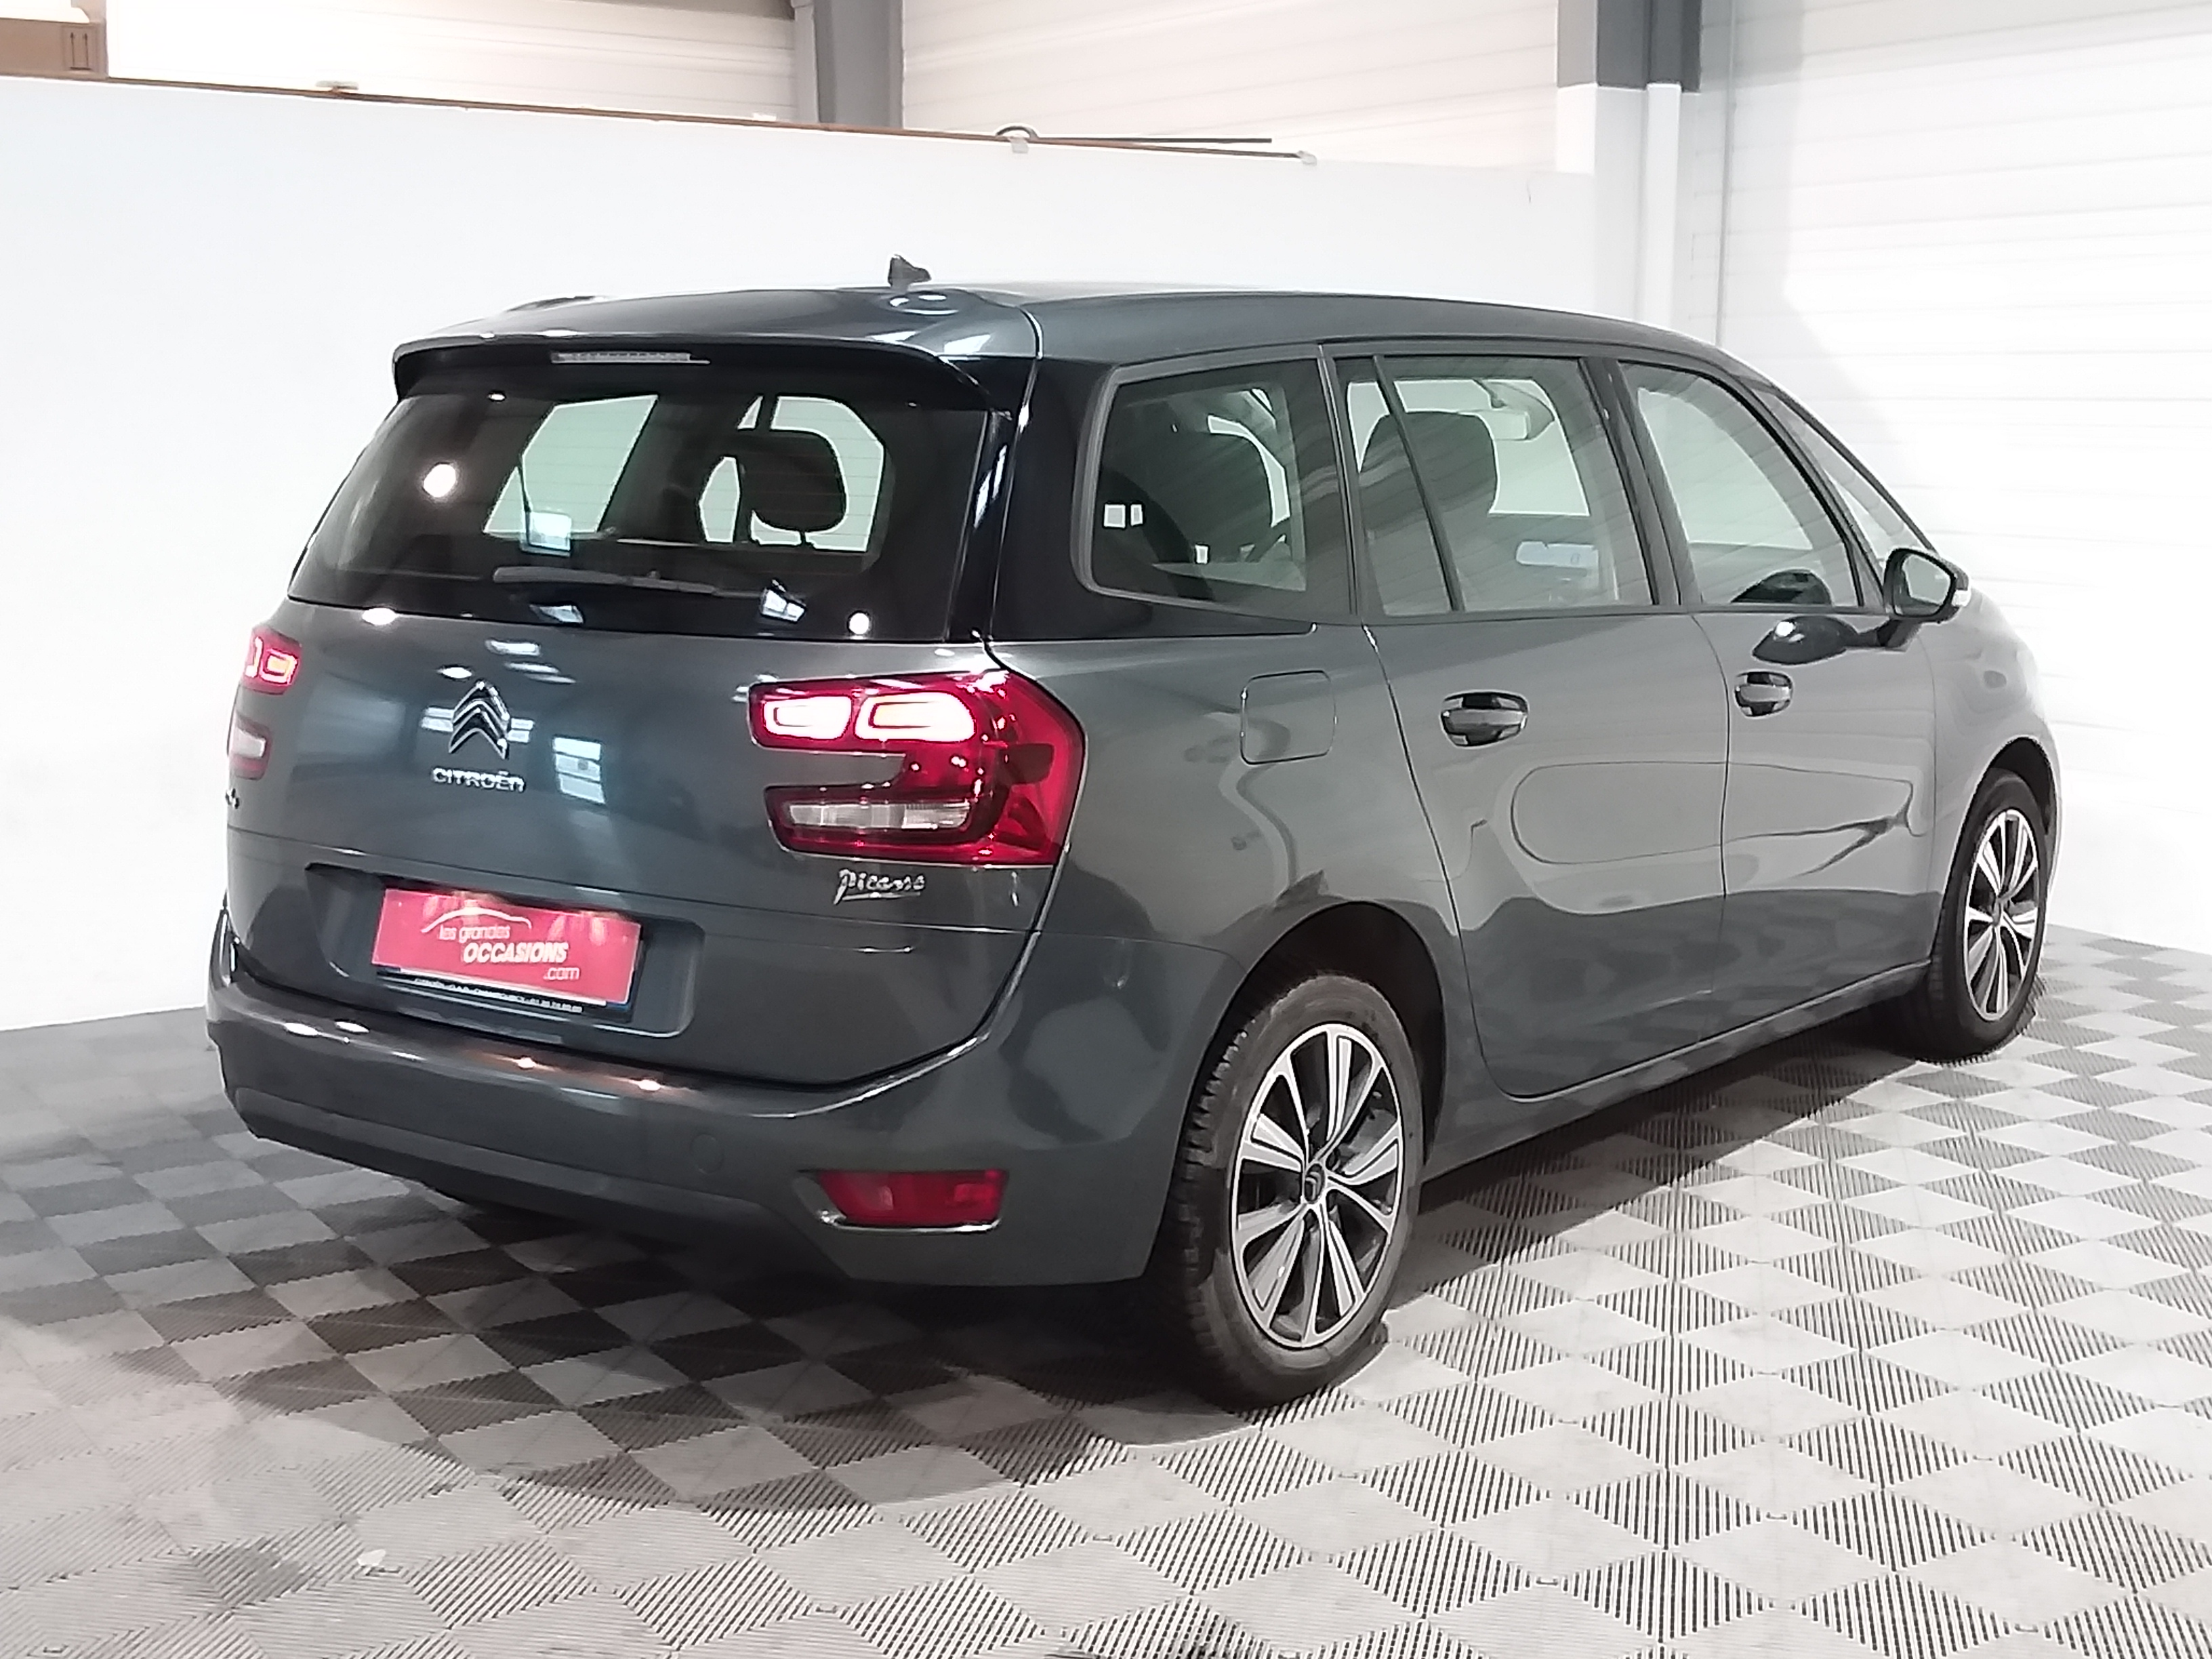 CITROEN GRAND C4 PICASSO BUSINESS 2017 - Photo n°3